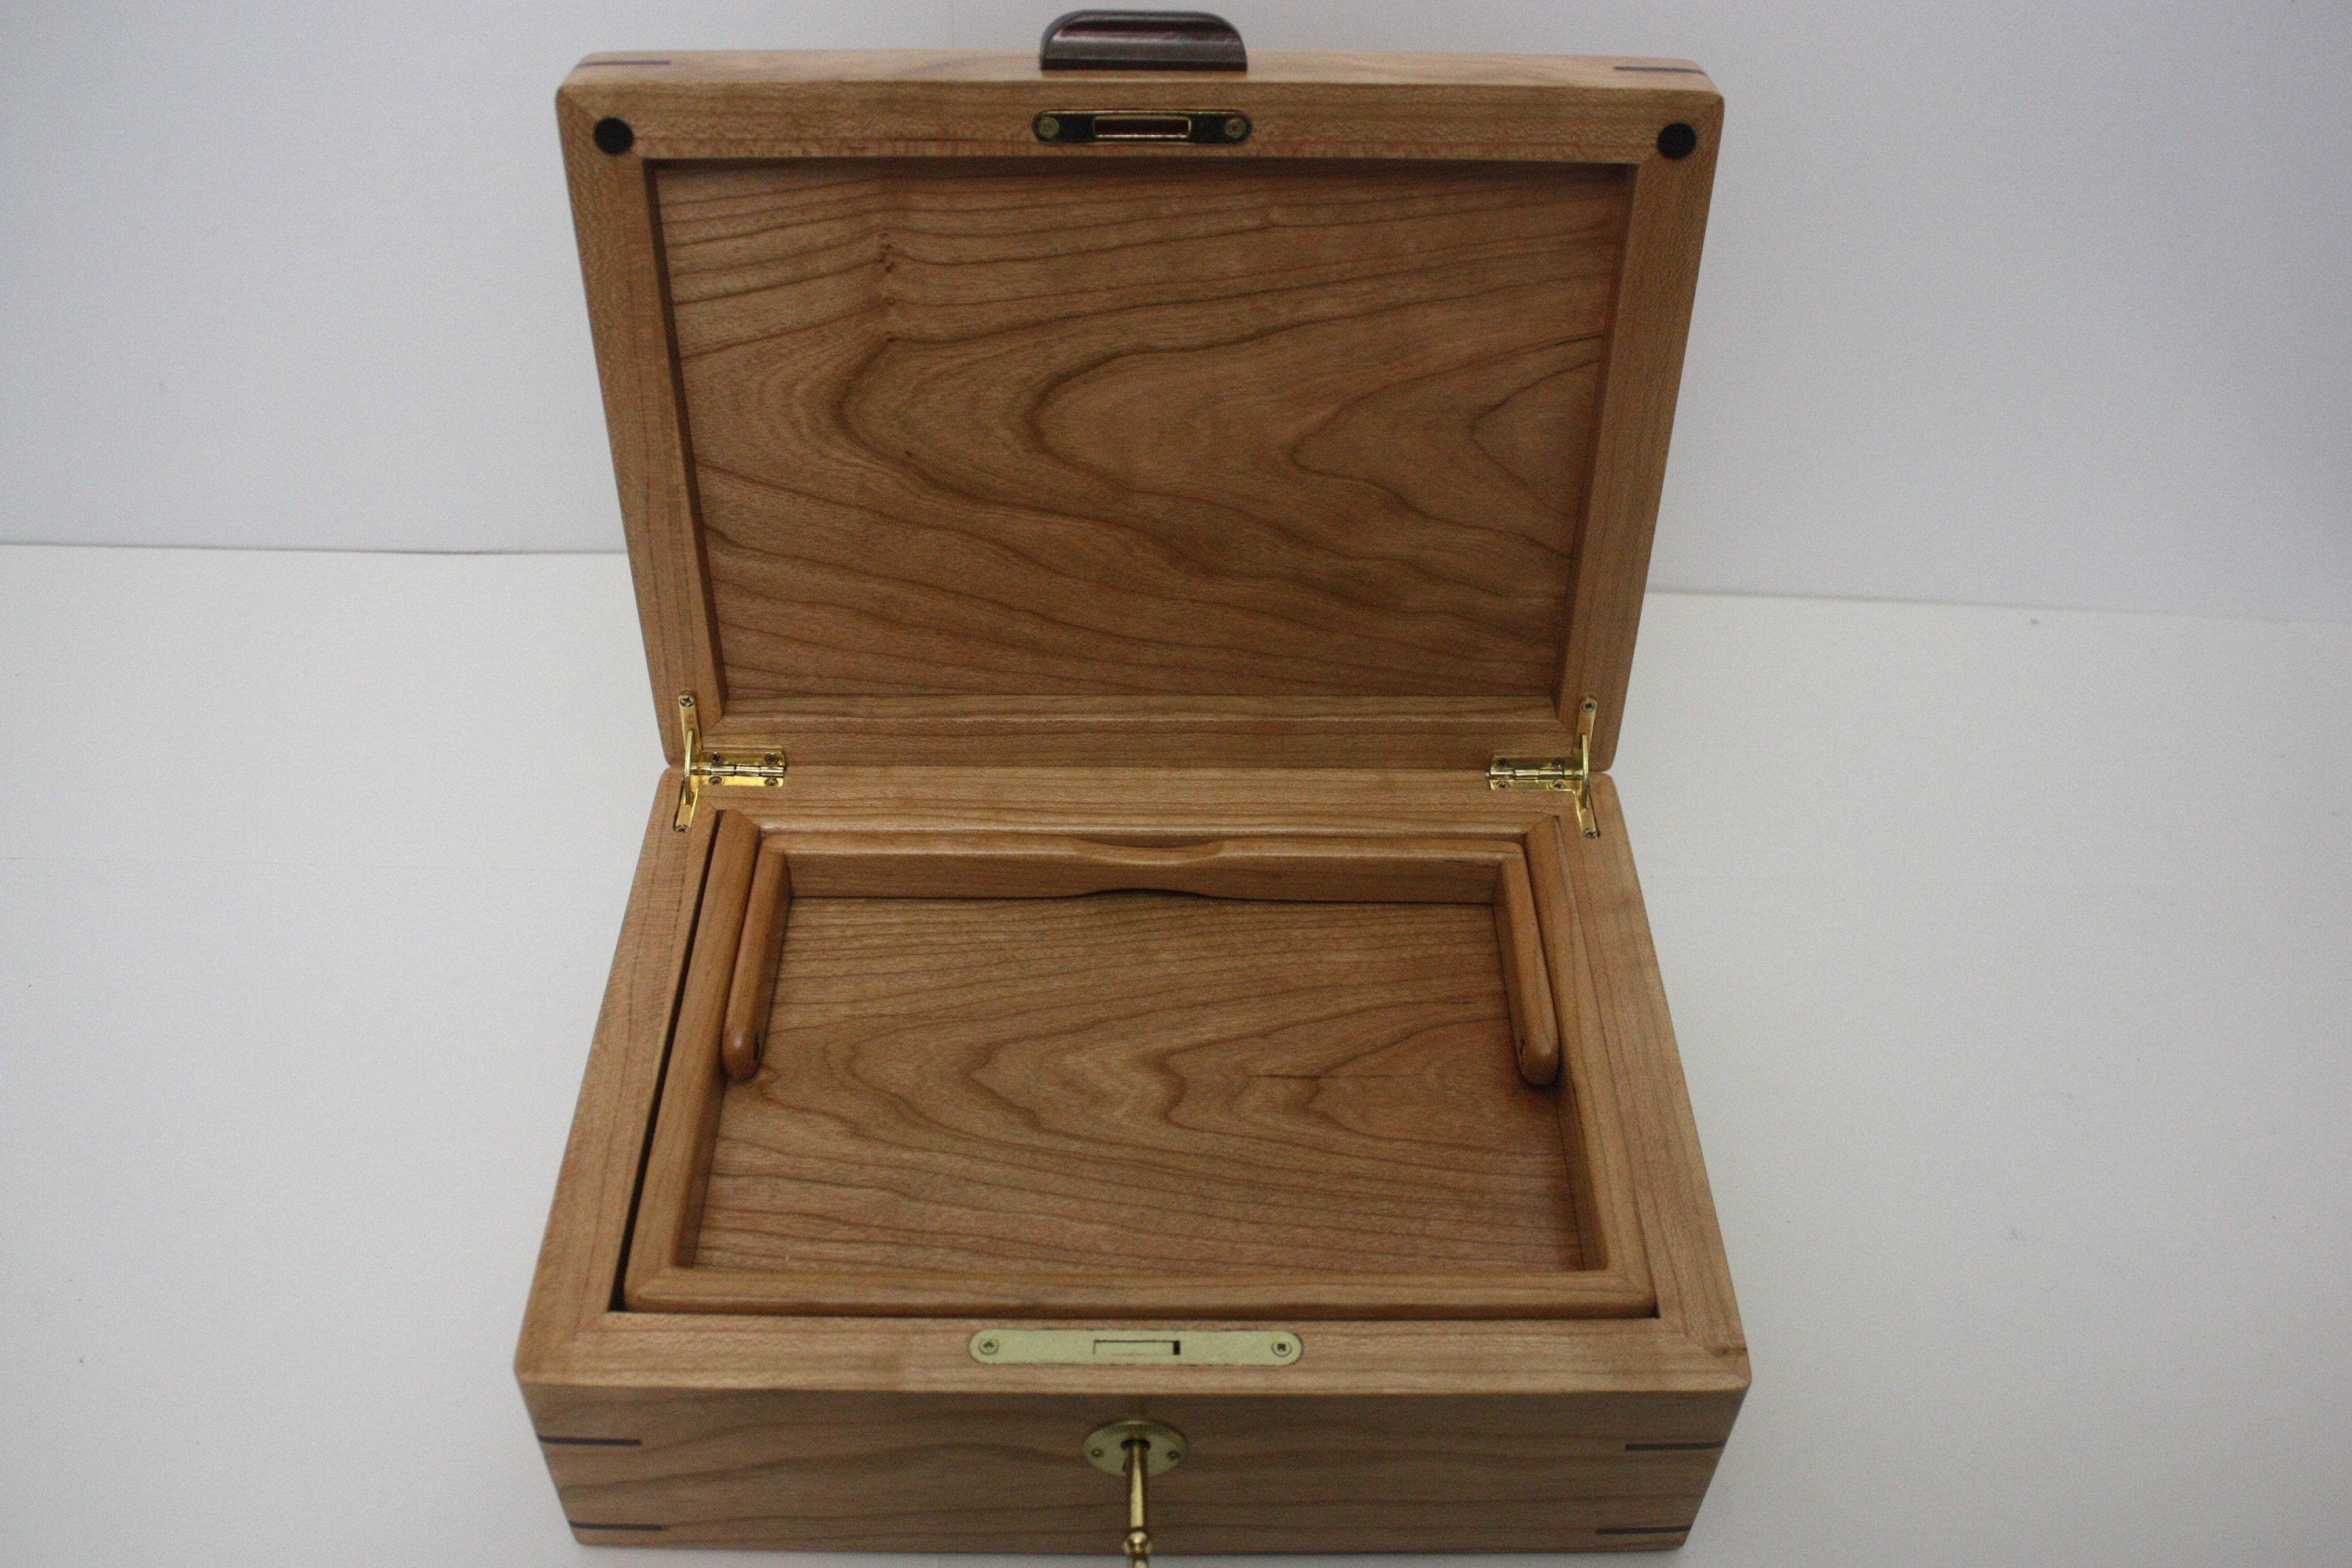 Cherry Wood Box with Lift Out Tray